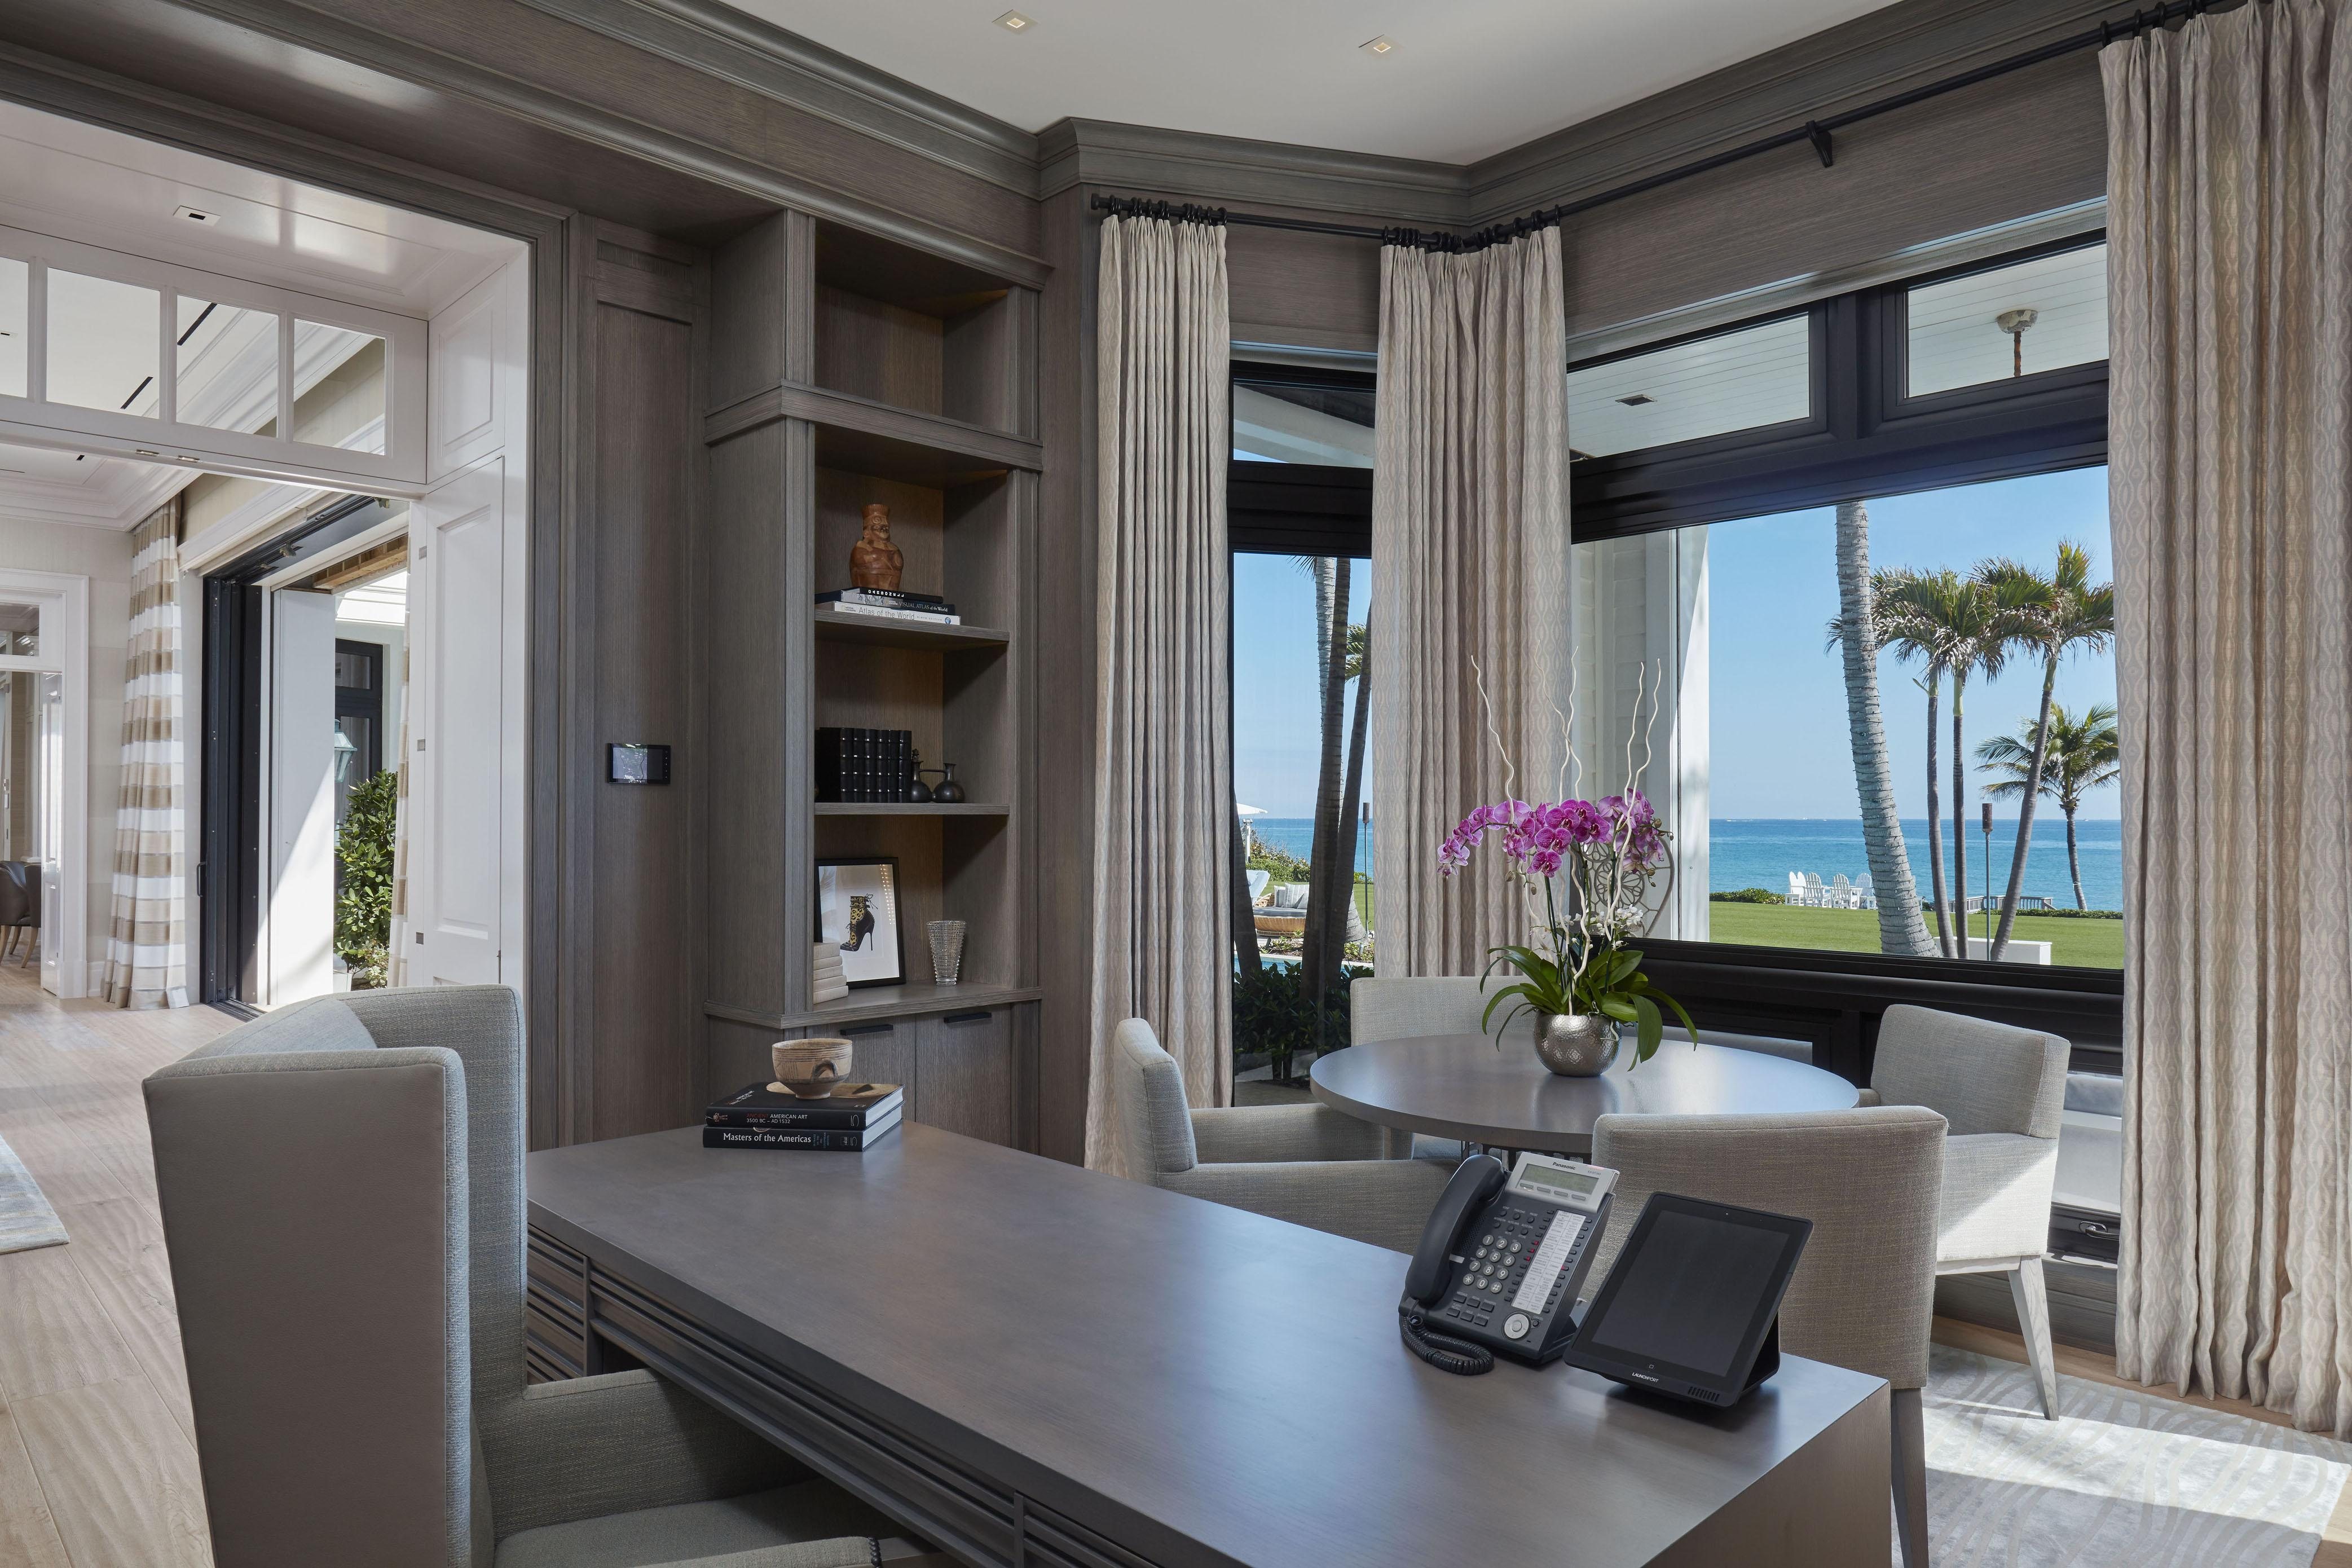 Elin Nordegren's mansion is hugely spacious and gives the owner an amazing view of the water